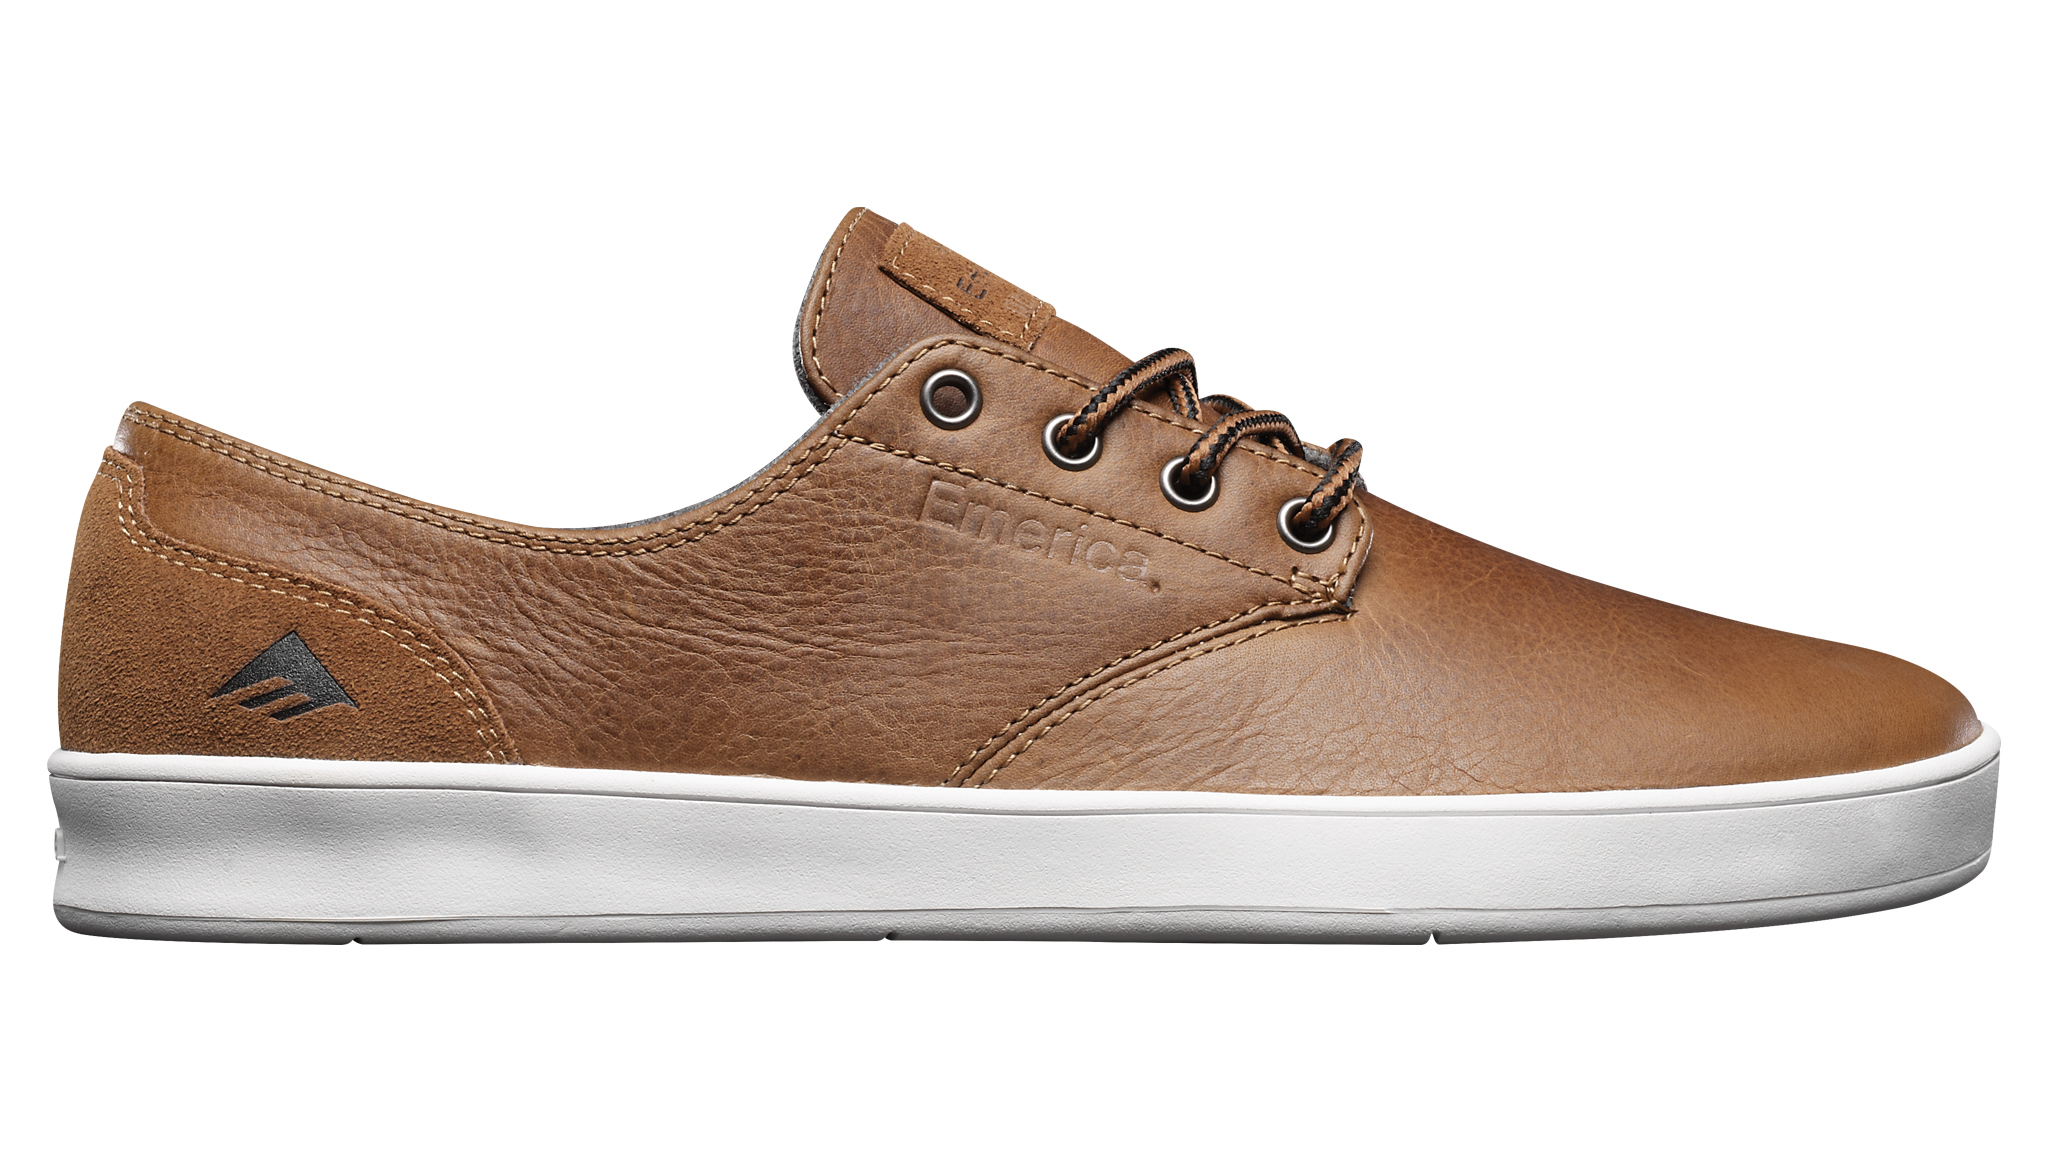 official photos 24ebc 2673c Emerica Romero Laced LX (80)